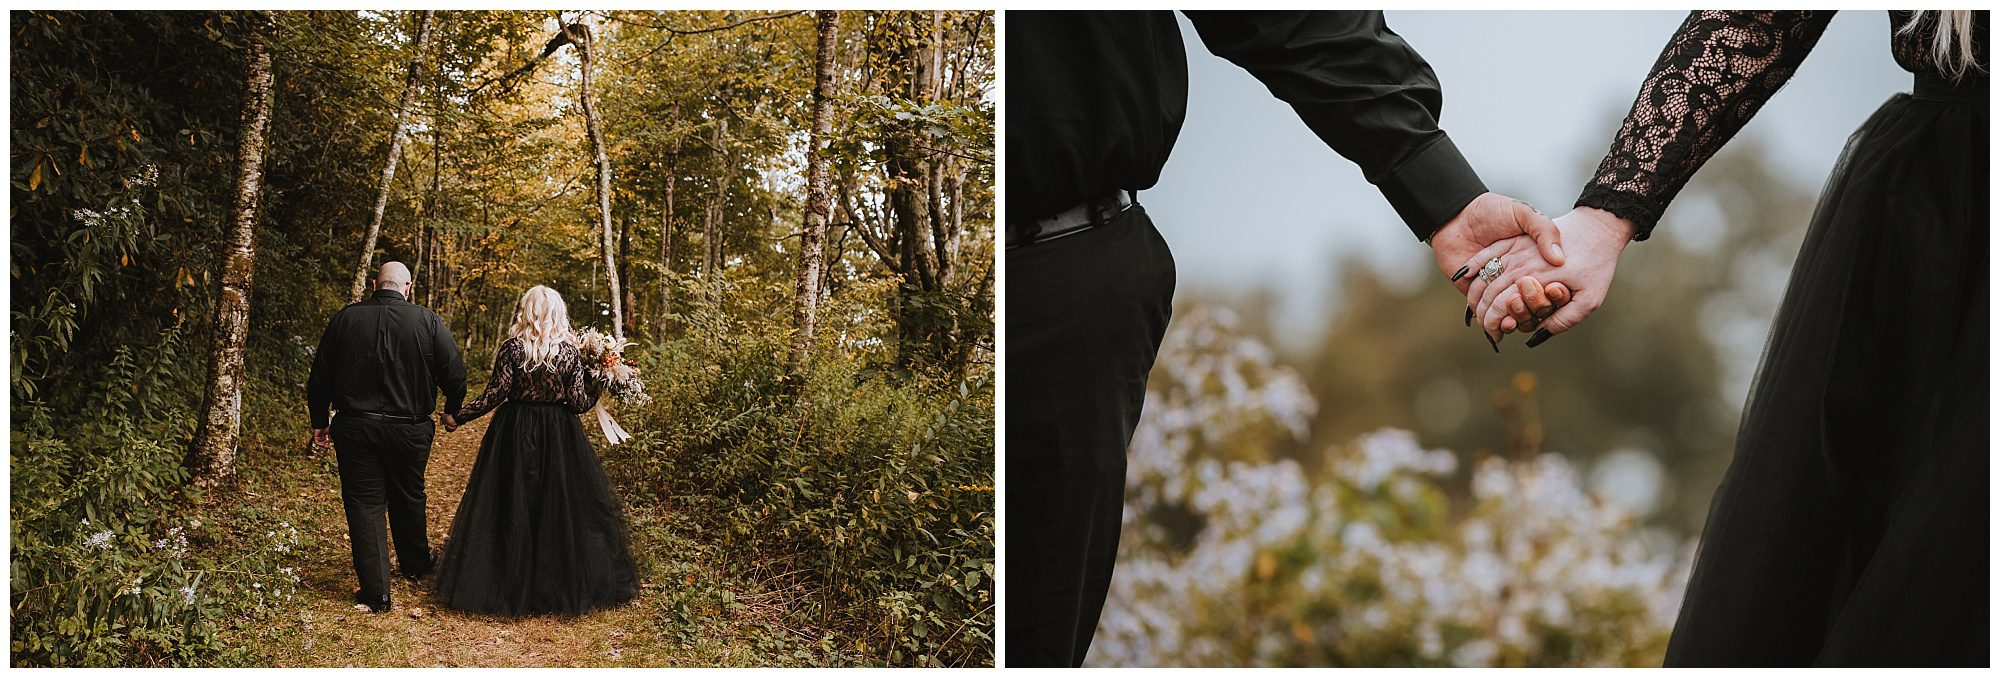 Foggy Fall Elopement in the NC Mountains